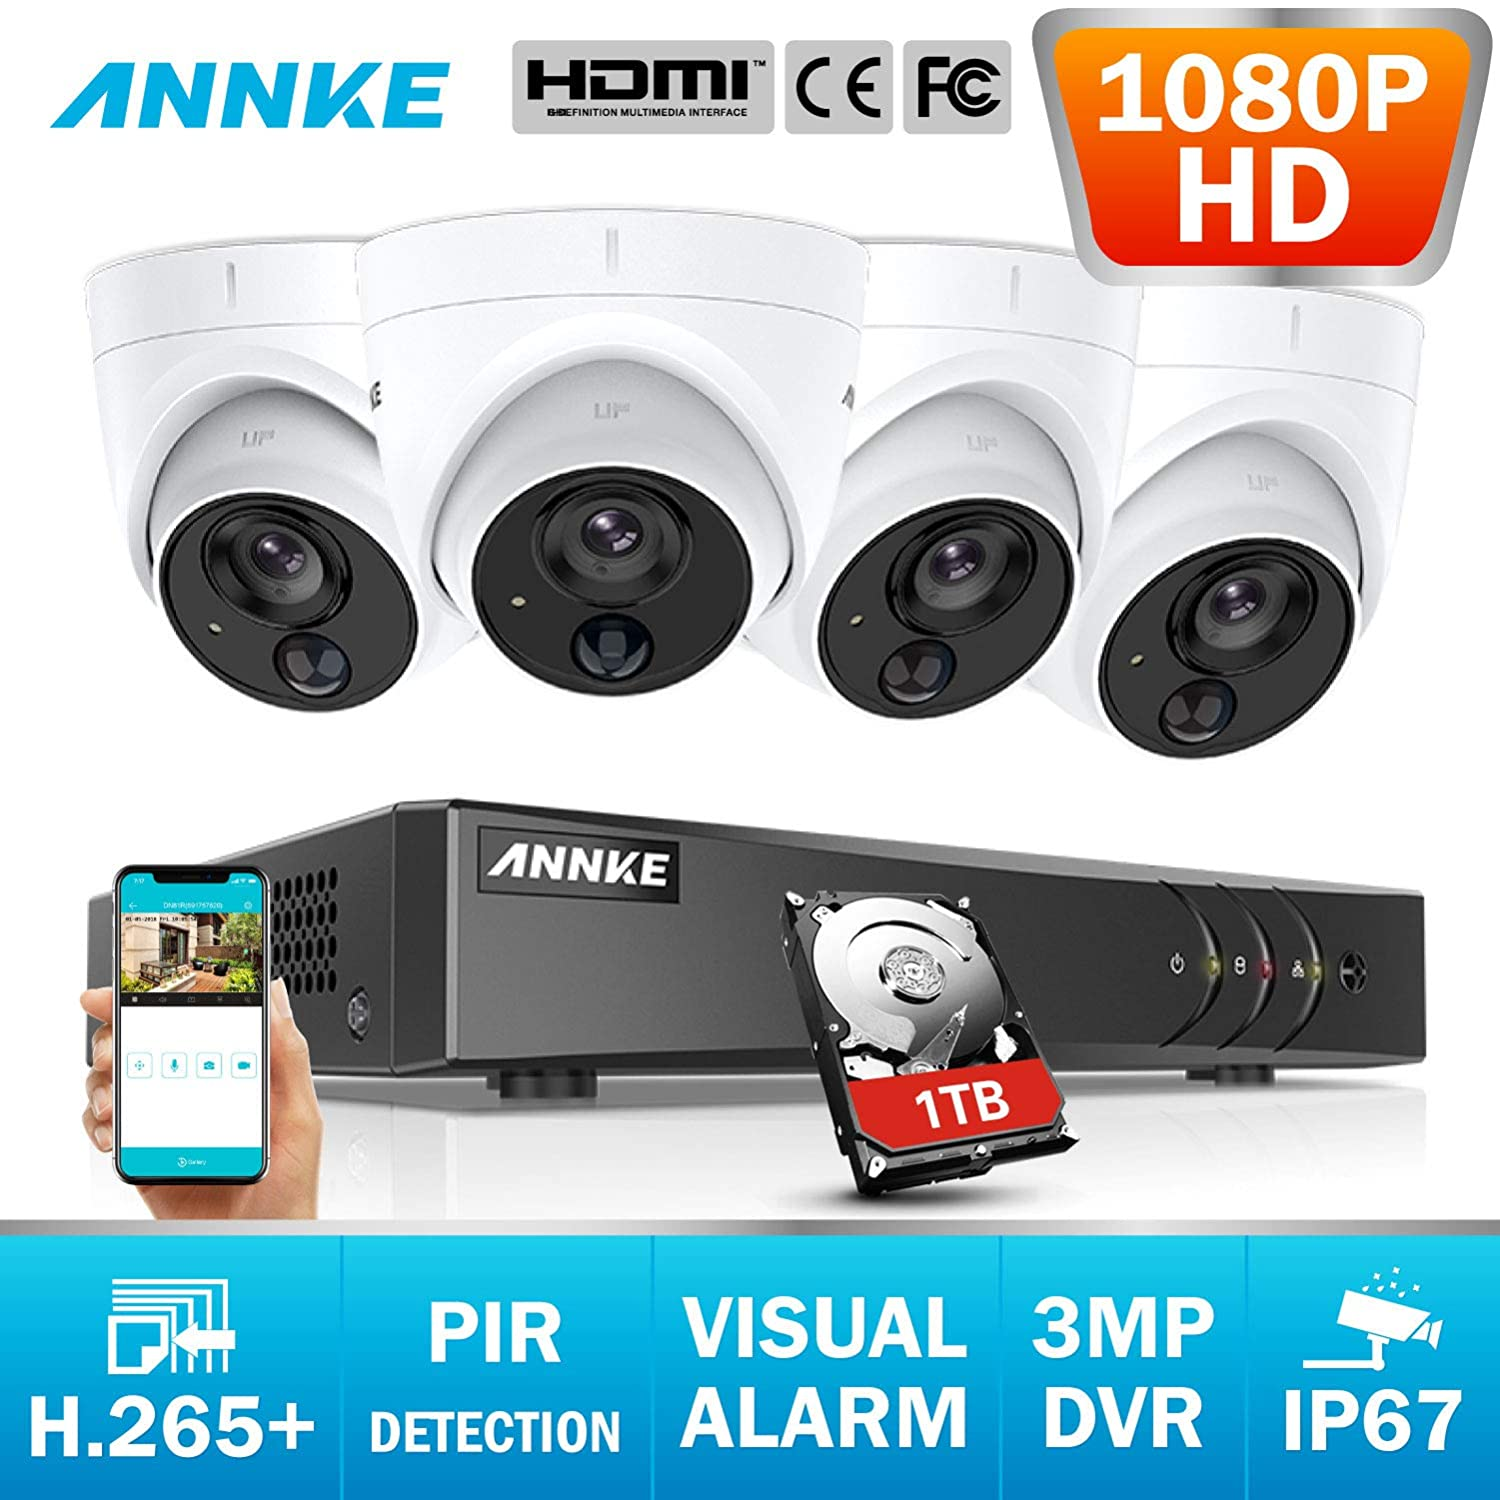 ANNKE 3MP 8CH CCTV Camera System with PIR Detection, Home Security 5-in-1  H 265+ DVR Kits and 4X 1080P HD IP67 Weatherproof Dome Cameras, White Light